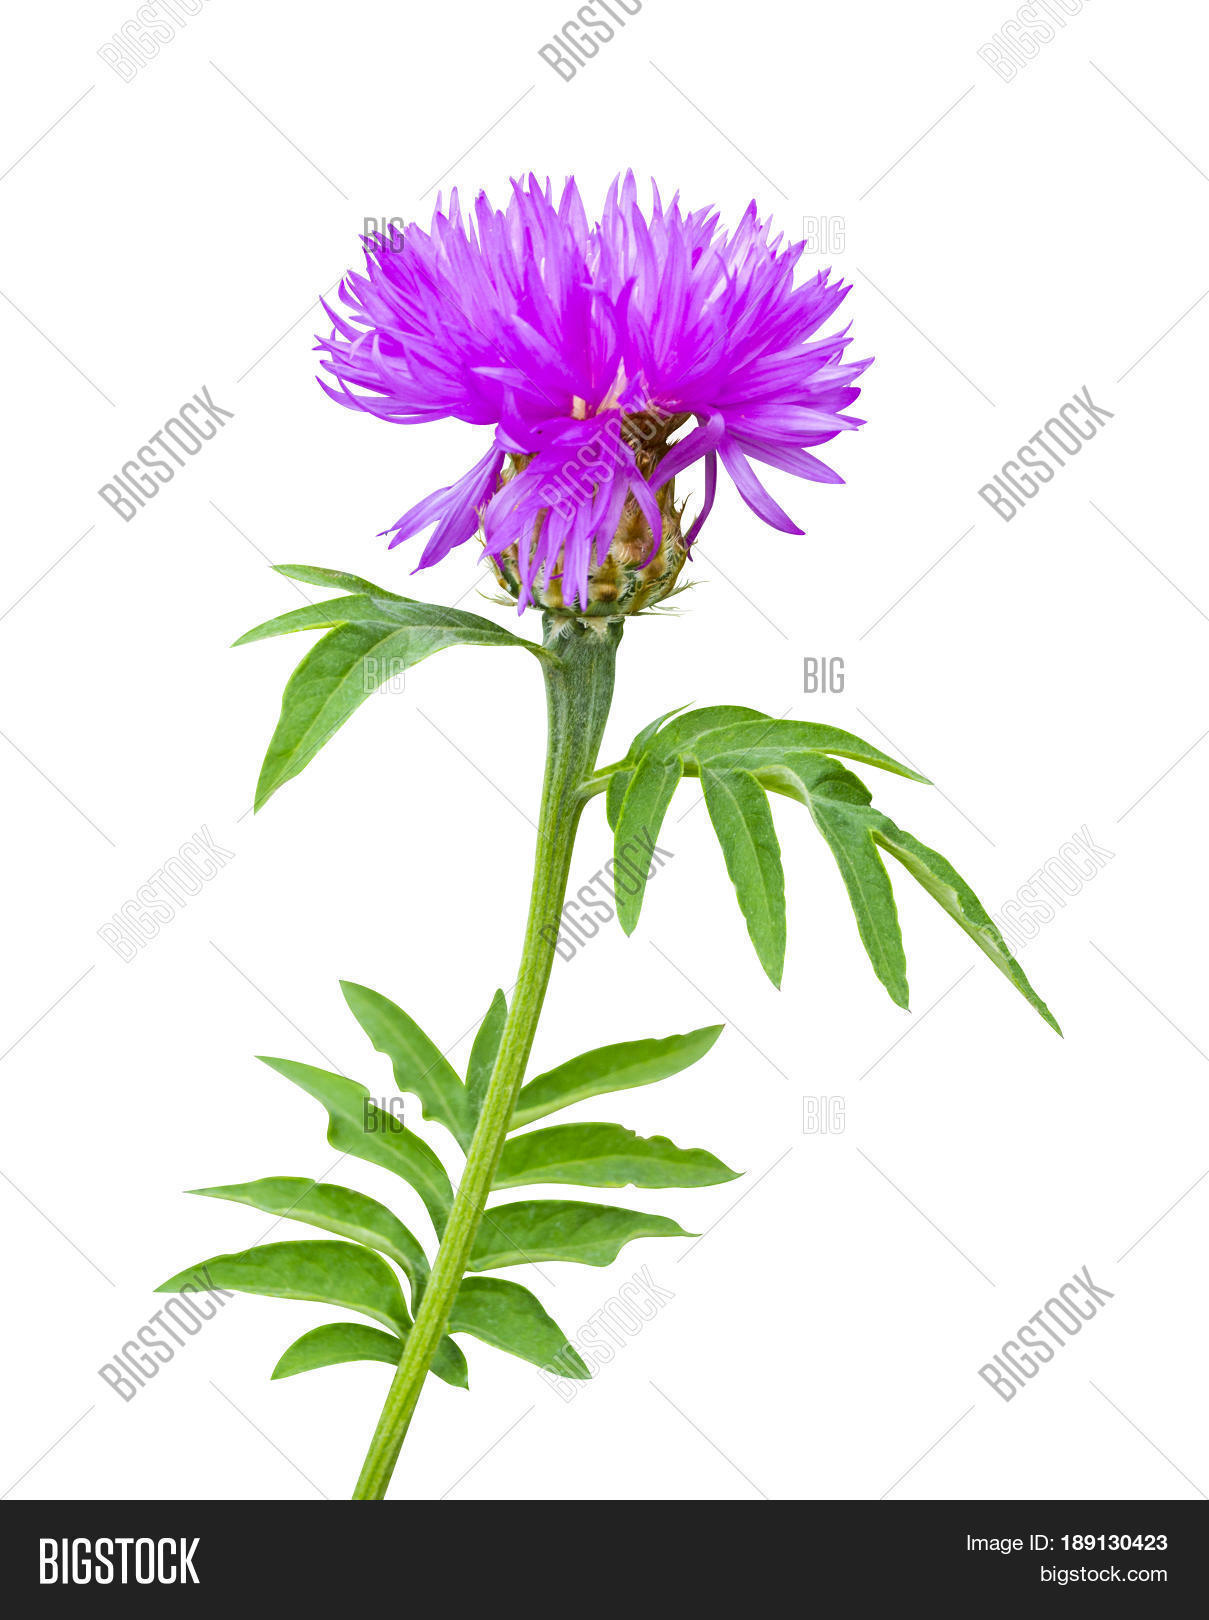 Milk Thistle Flower Image Photo Free Trial Bigstock